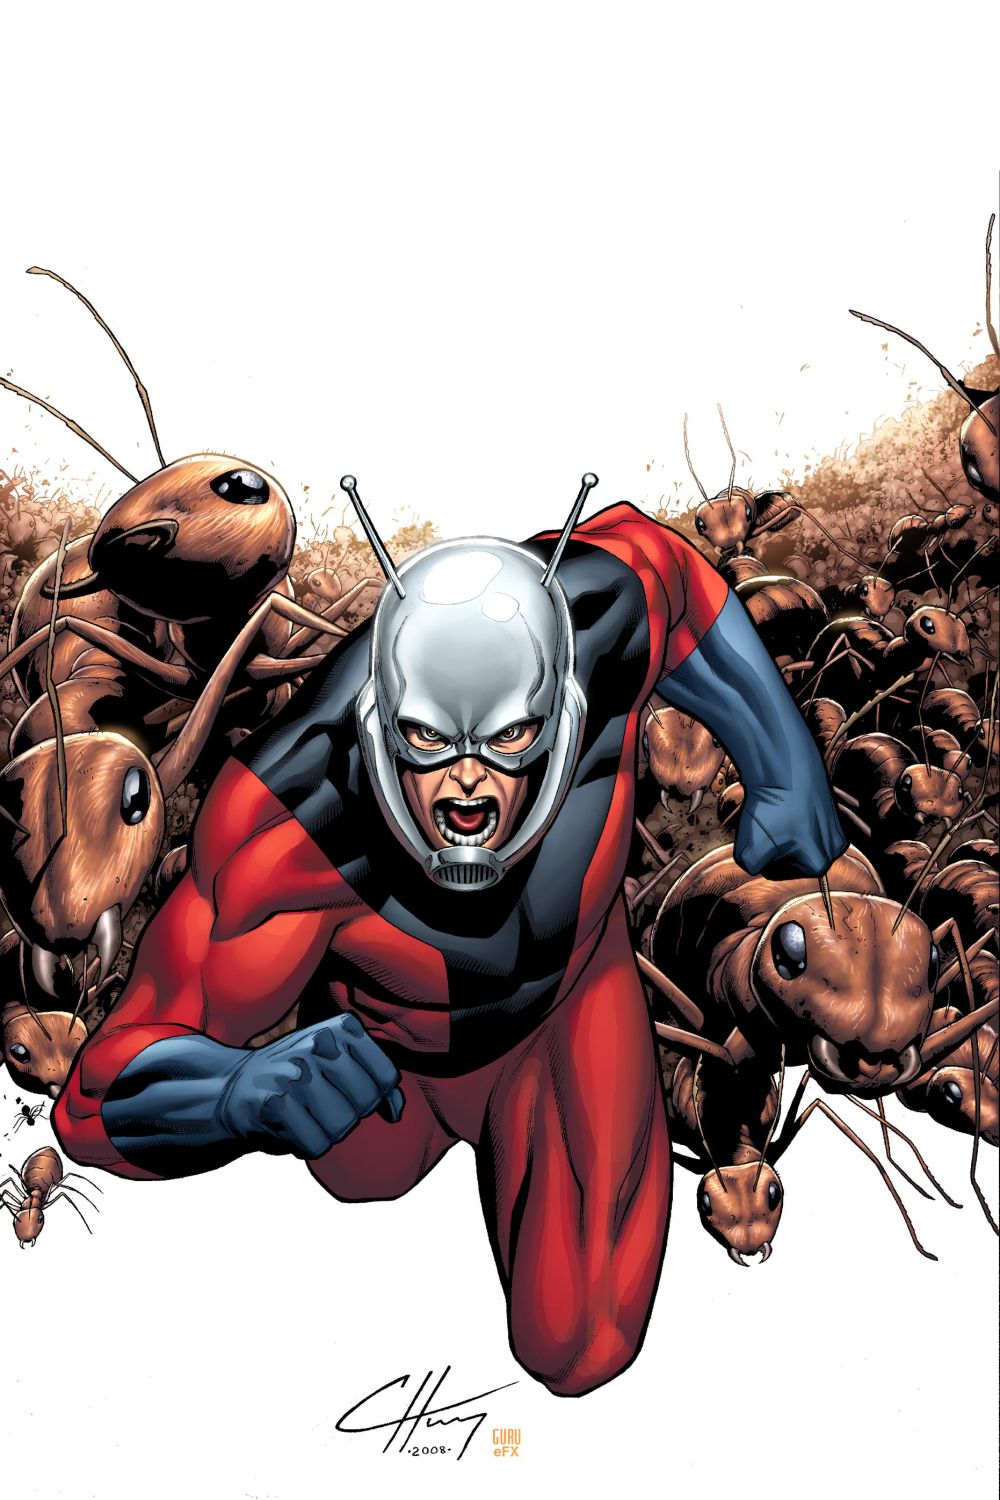 This is a photo of Zany Marvel Heroes Ant Man